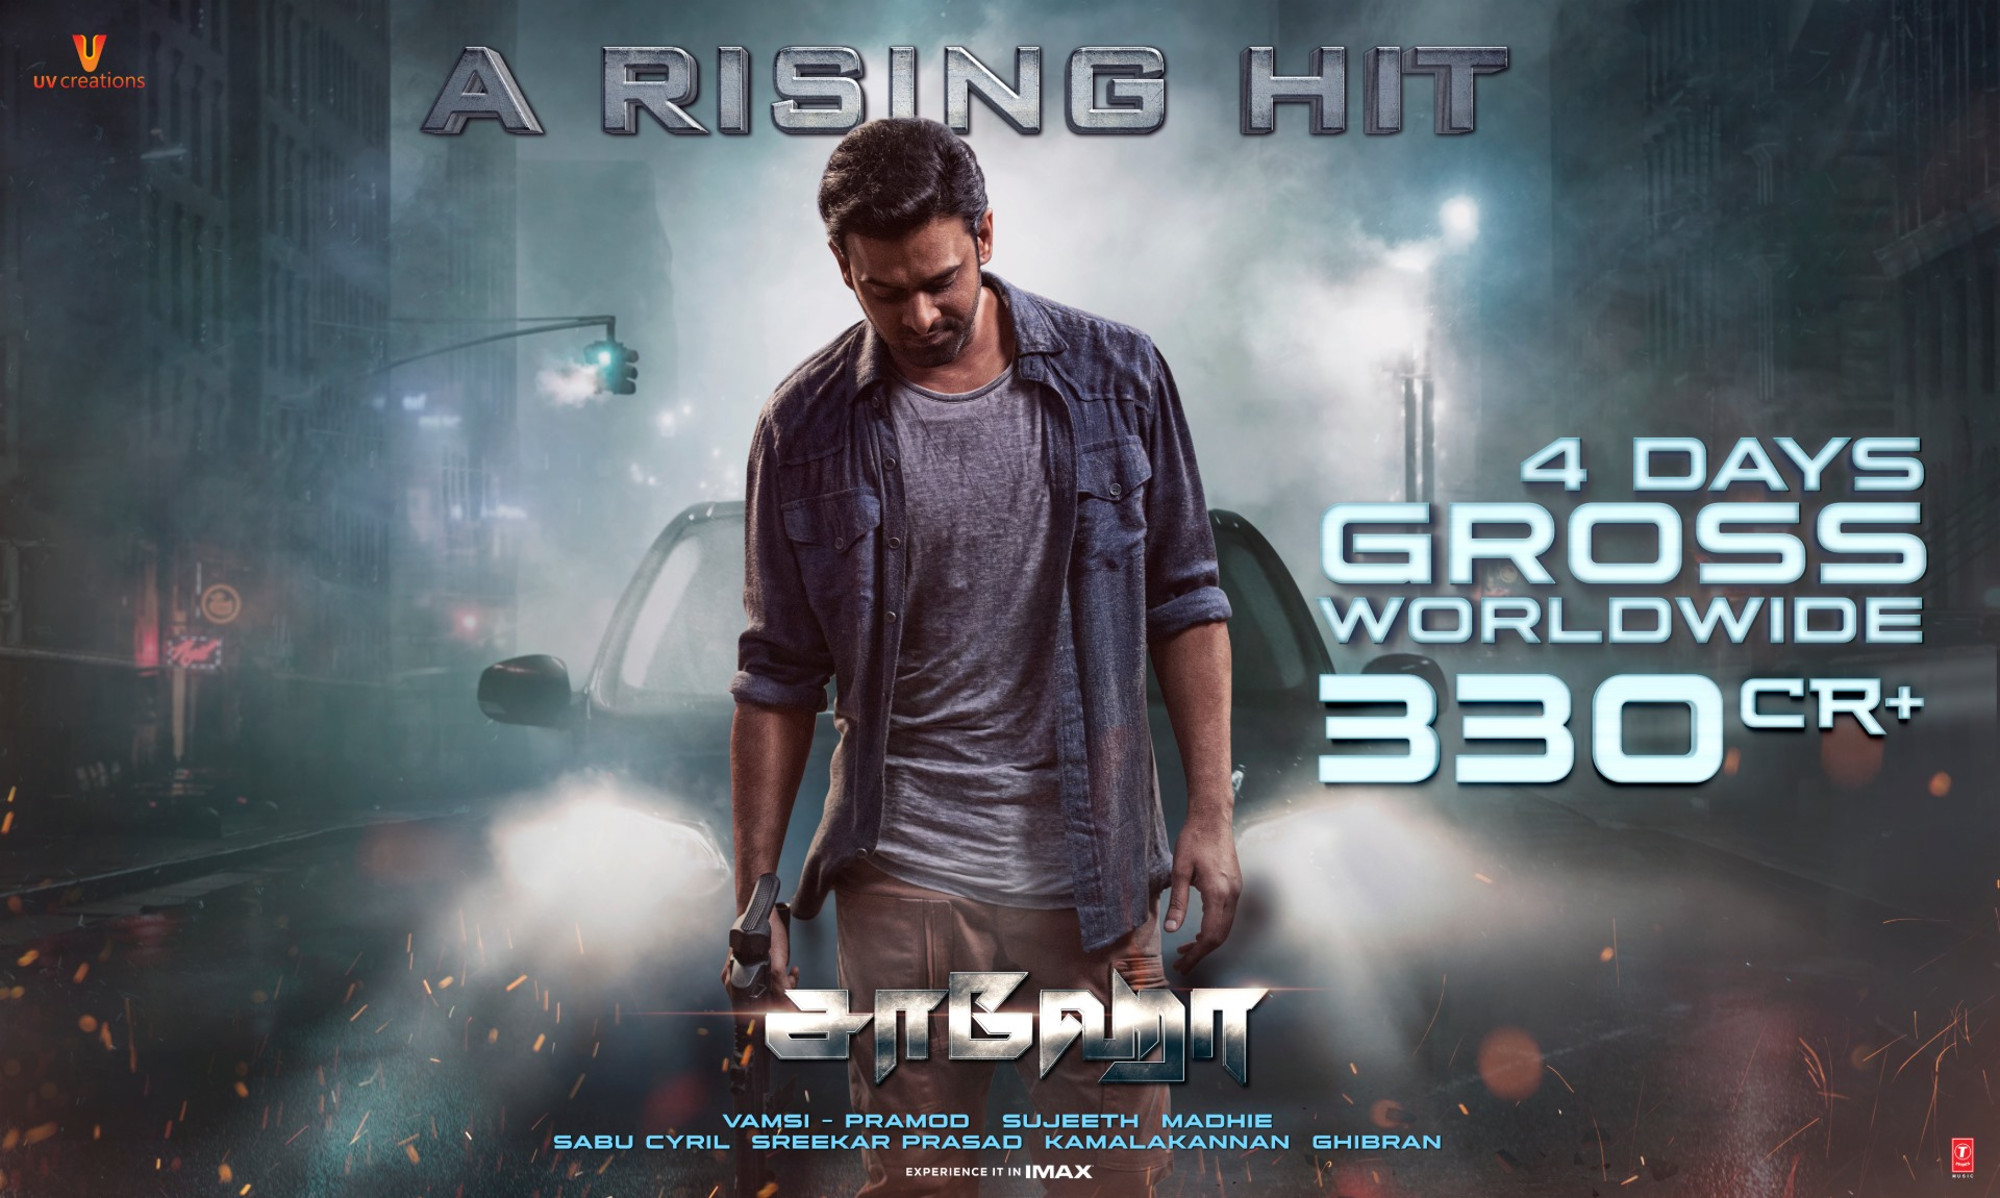 Prabhas stardom has pulled Saaho on the top; collects whopping number of 330 cr worldwide in just 4 days